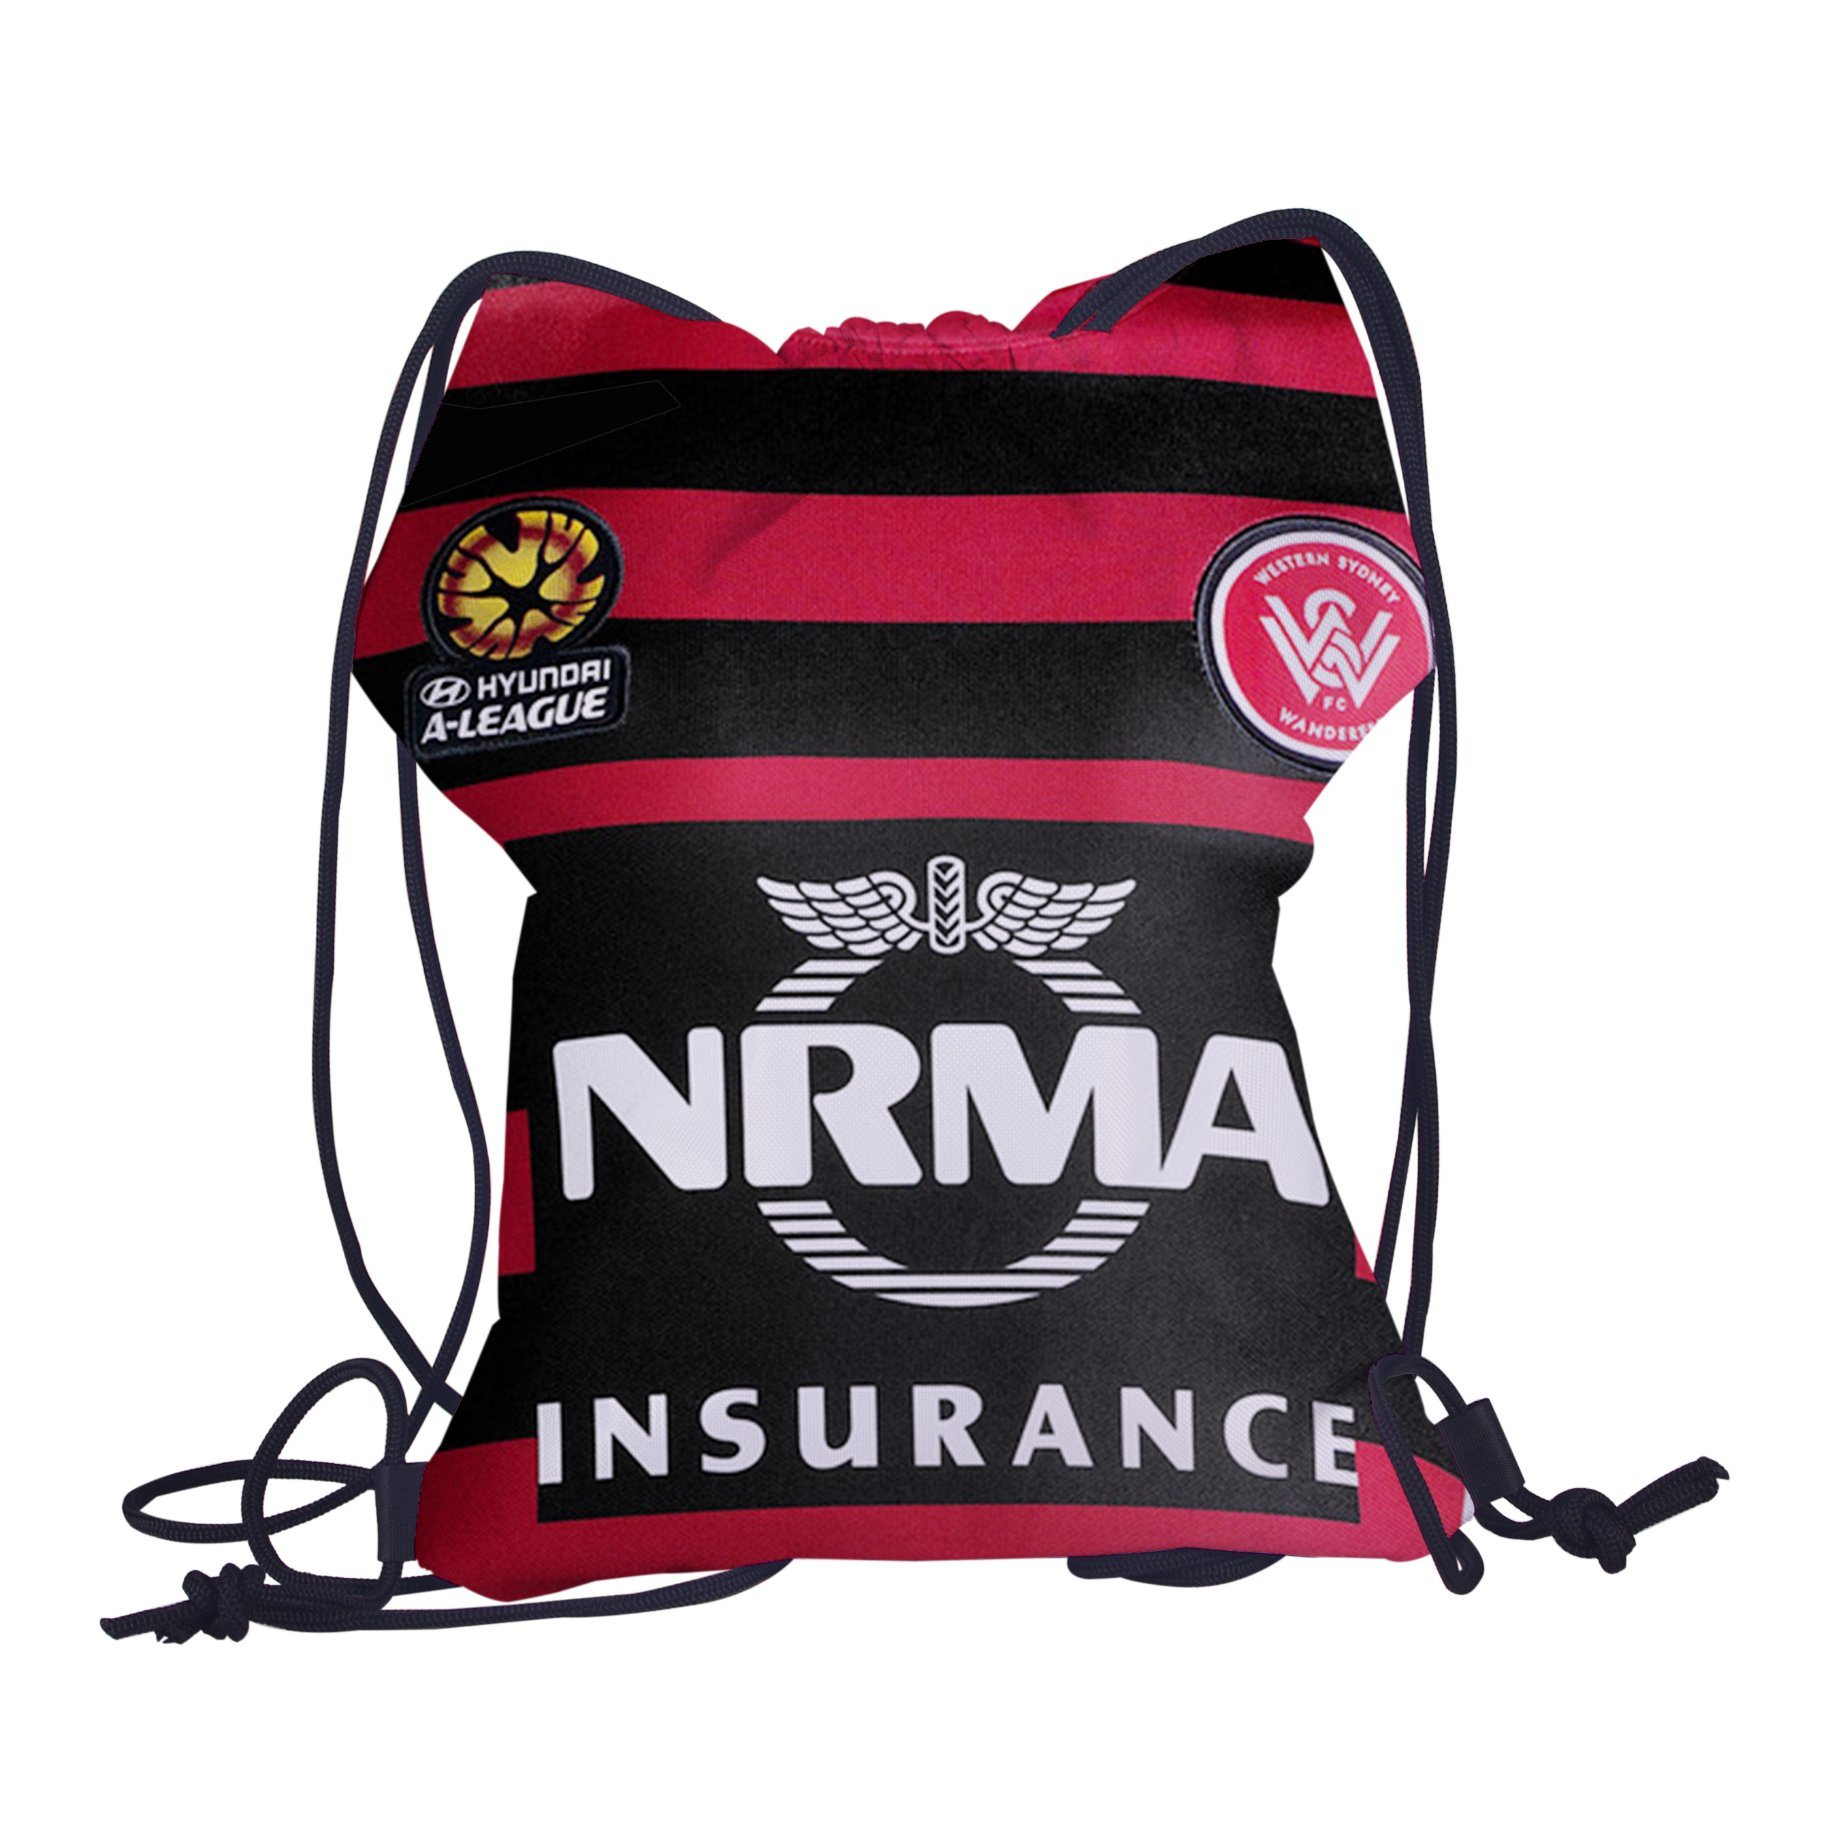 f7bddb915cd77 China Design Your Own Team Sports Bags Personalized Drawstring Backpack -  China Team Sports Bags